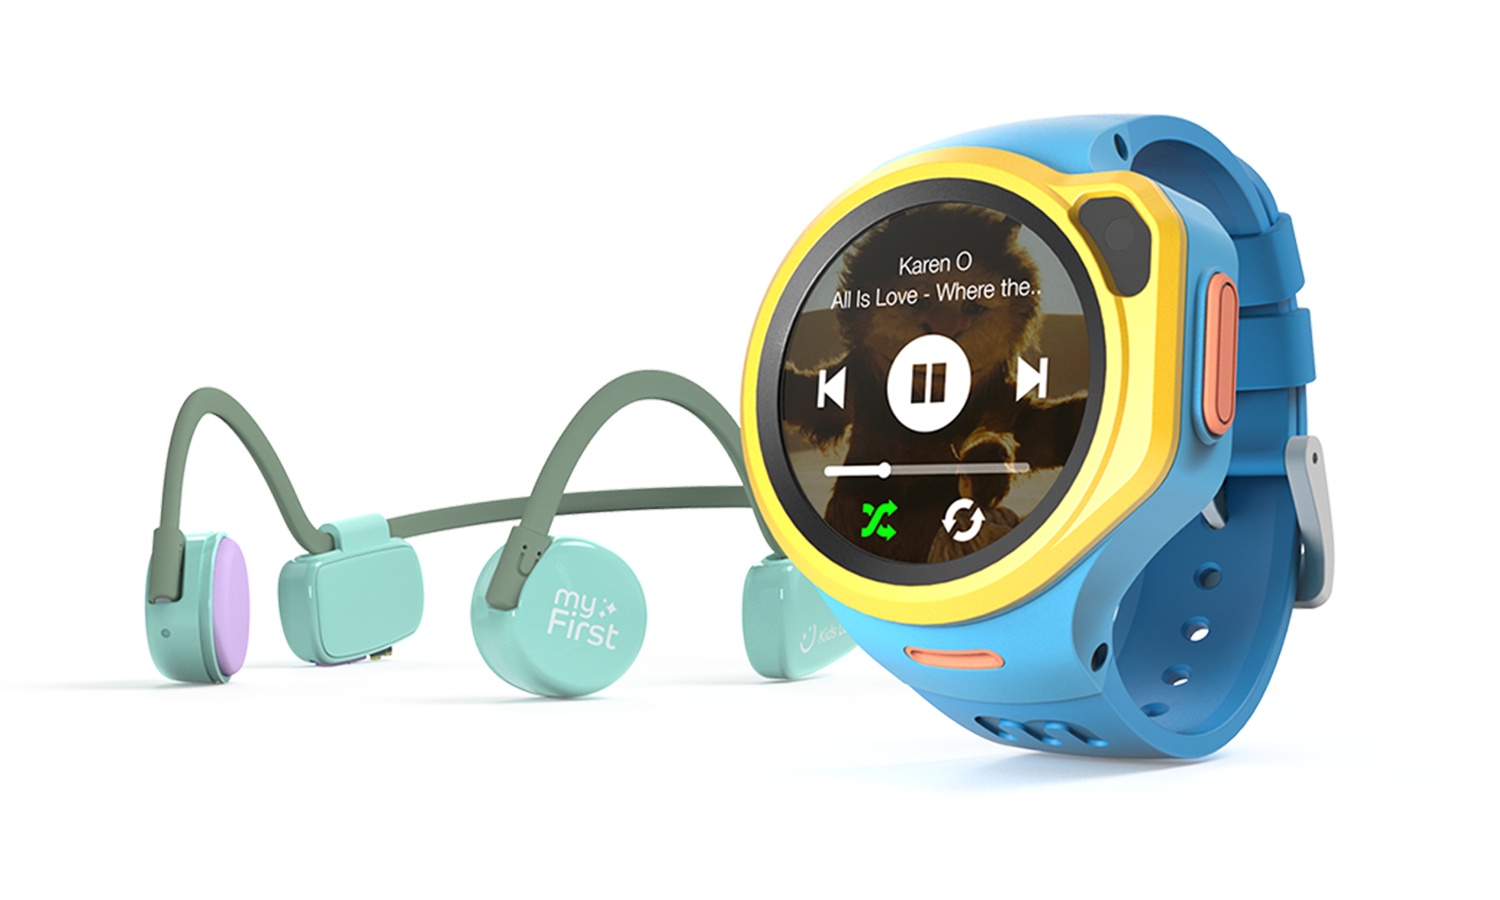 myFirst Fone R1 - Smart watch phone for kids with gps tracker and MP3 Player with myFirst Headphones BC Wireless